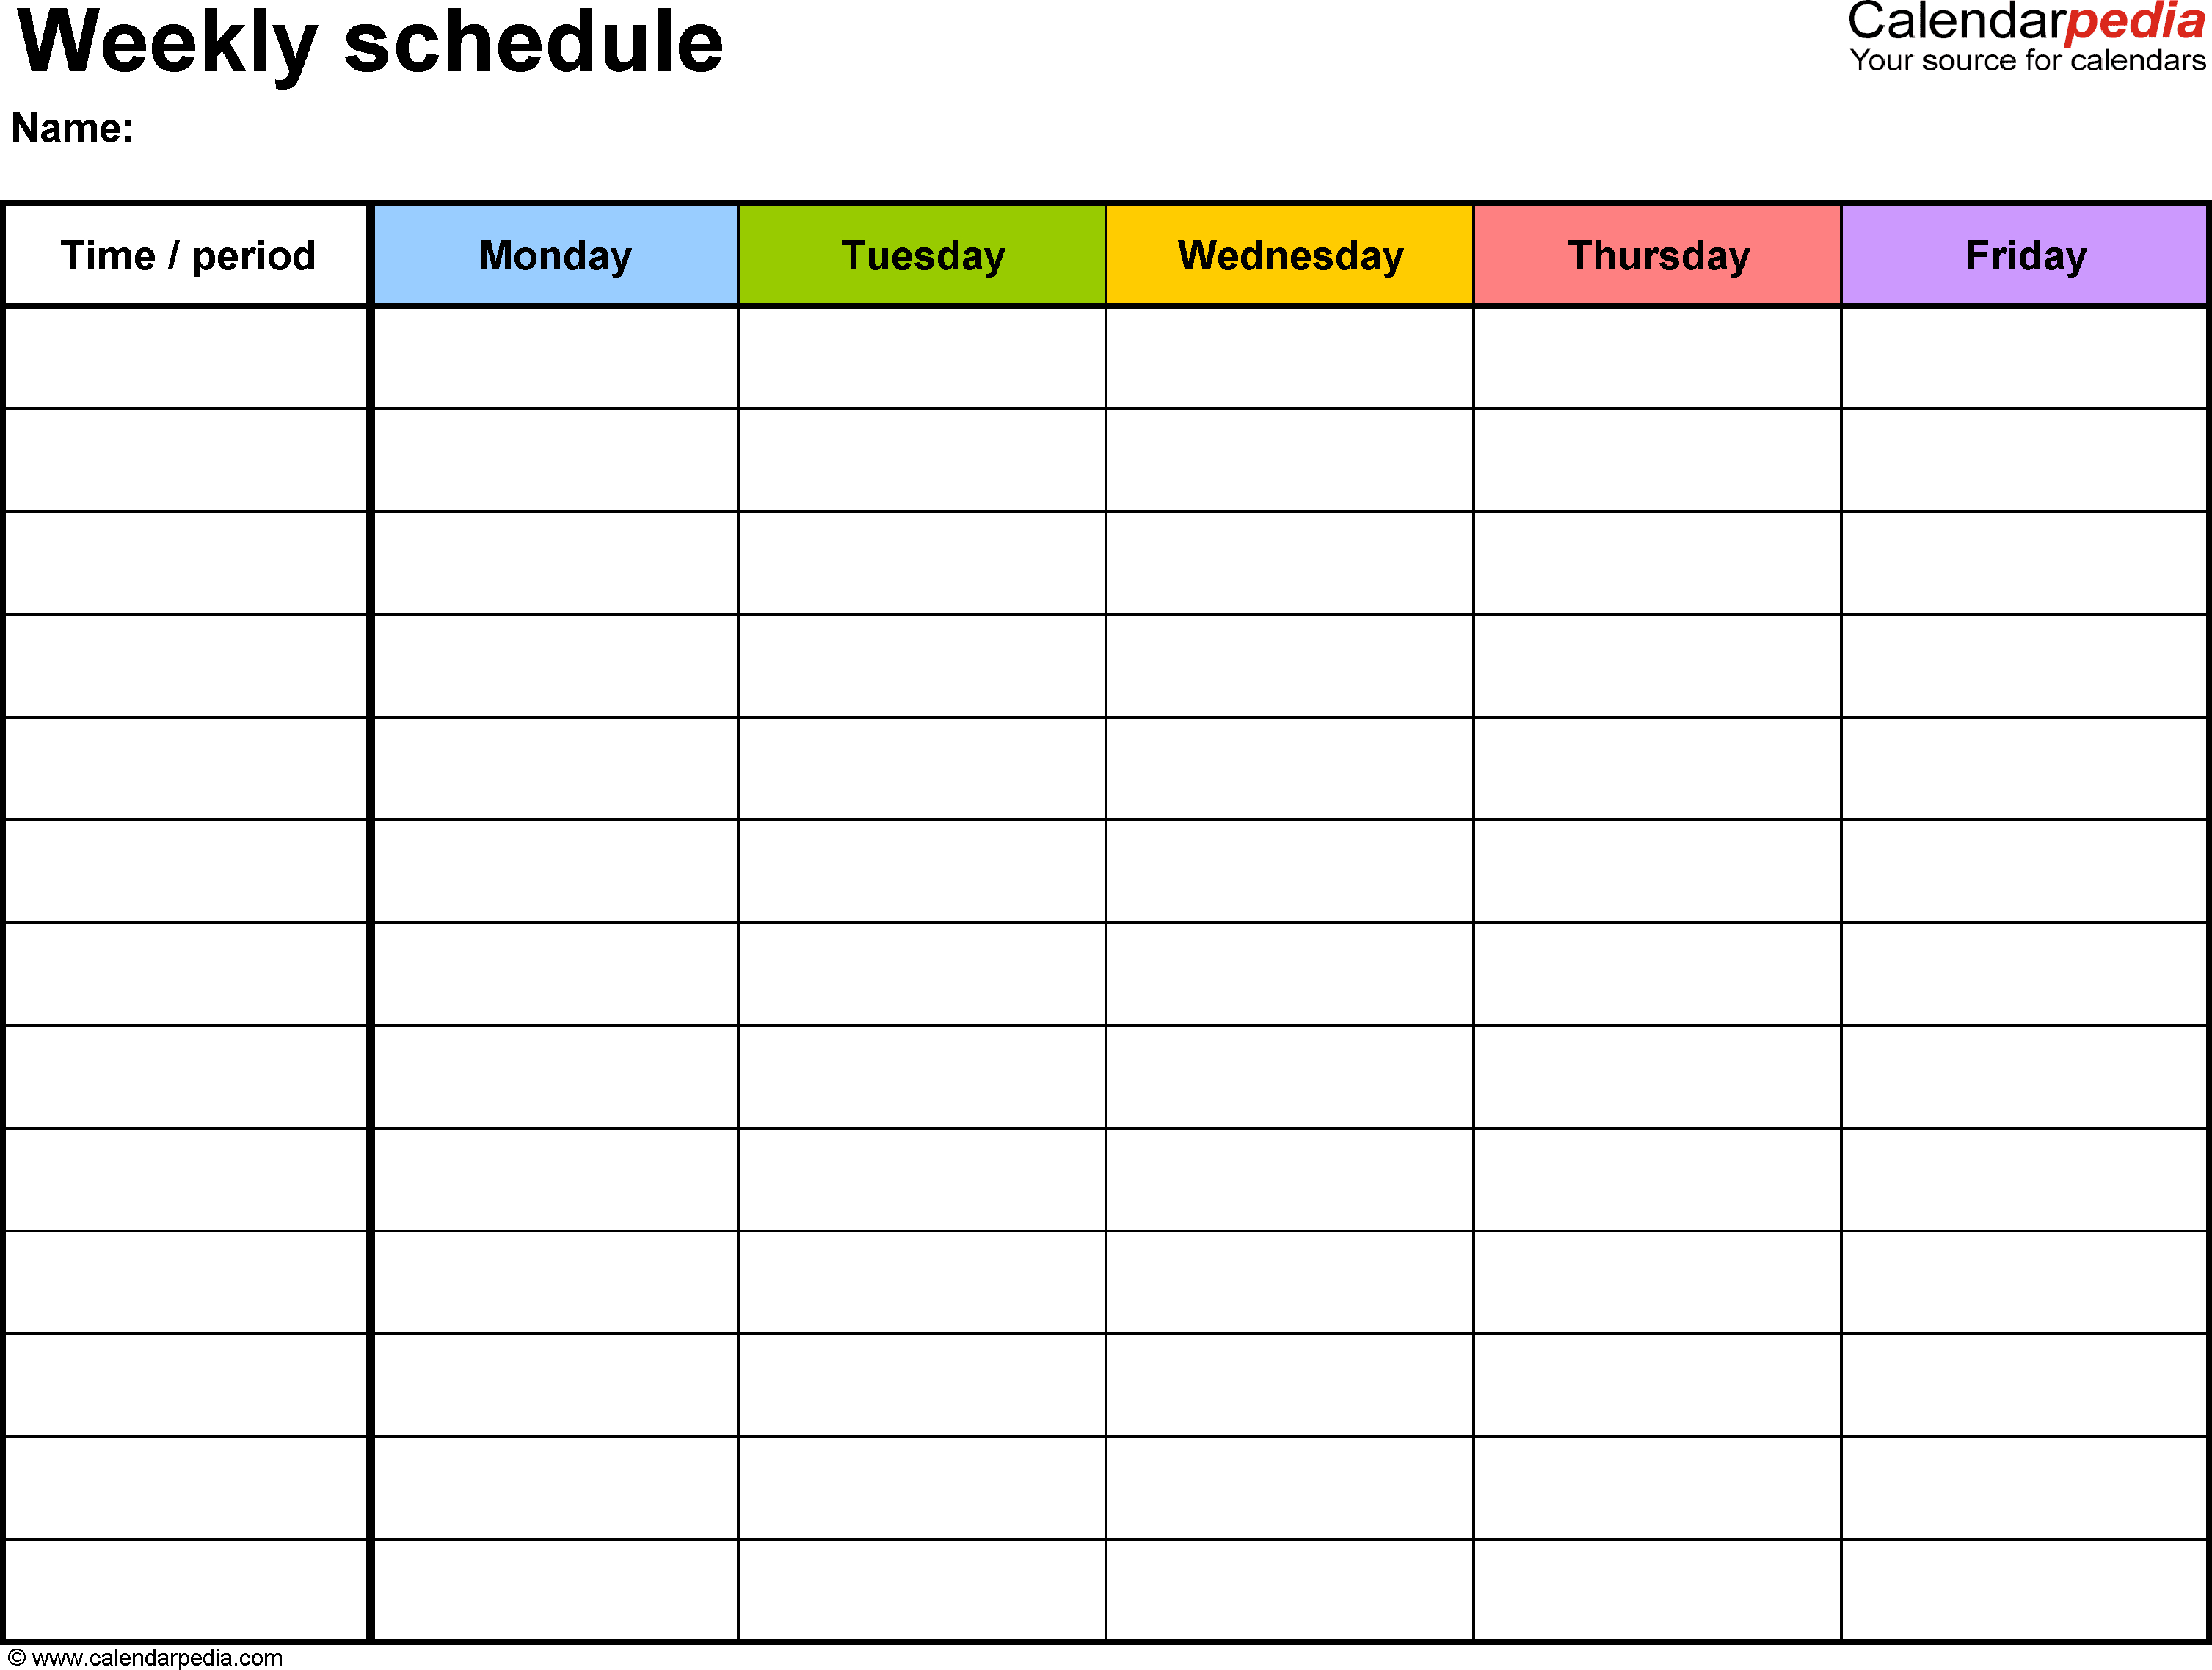 Free Weekly Schedule Templates For Pdf - 18 Templates throughout Weekly Blank Calendar Printable Pdf